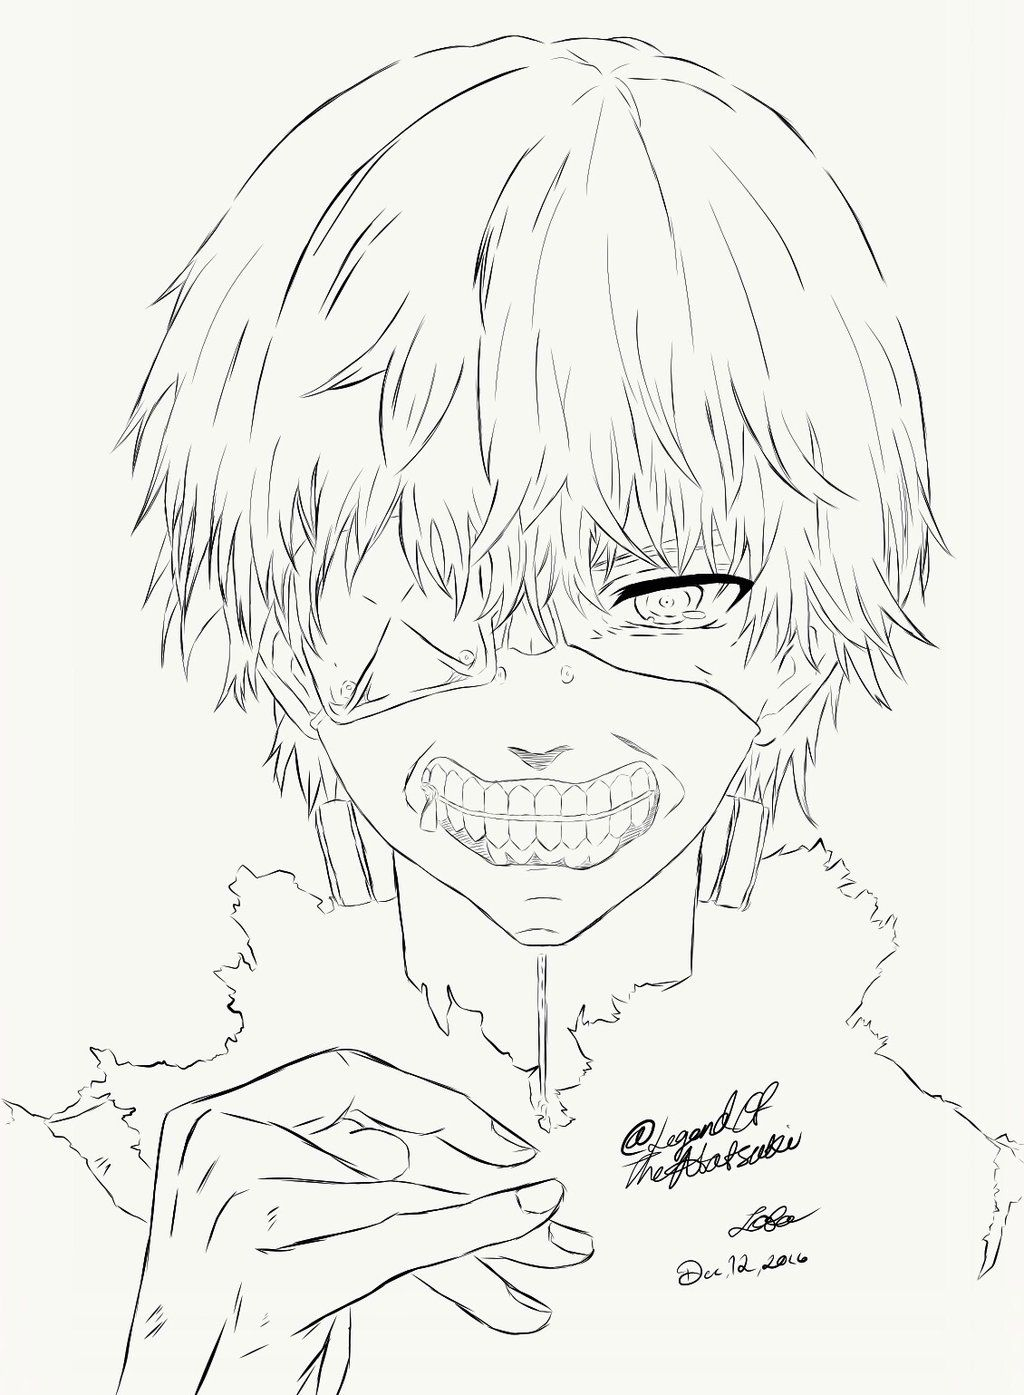 Pin By Divaka On Drawings Tokyo Ghoul Drawing Art Drawings Sketches Sketches